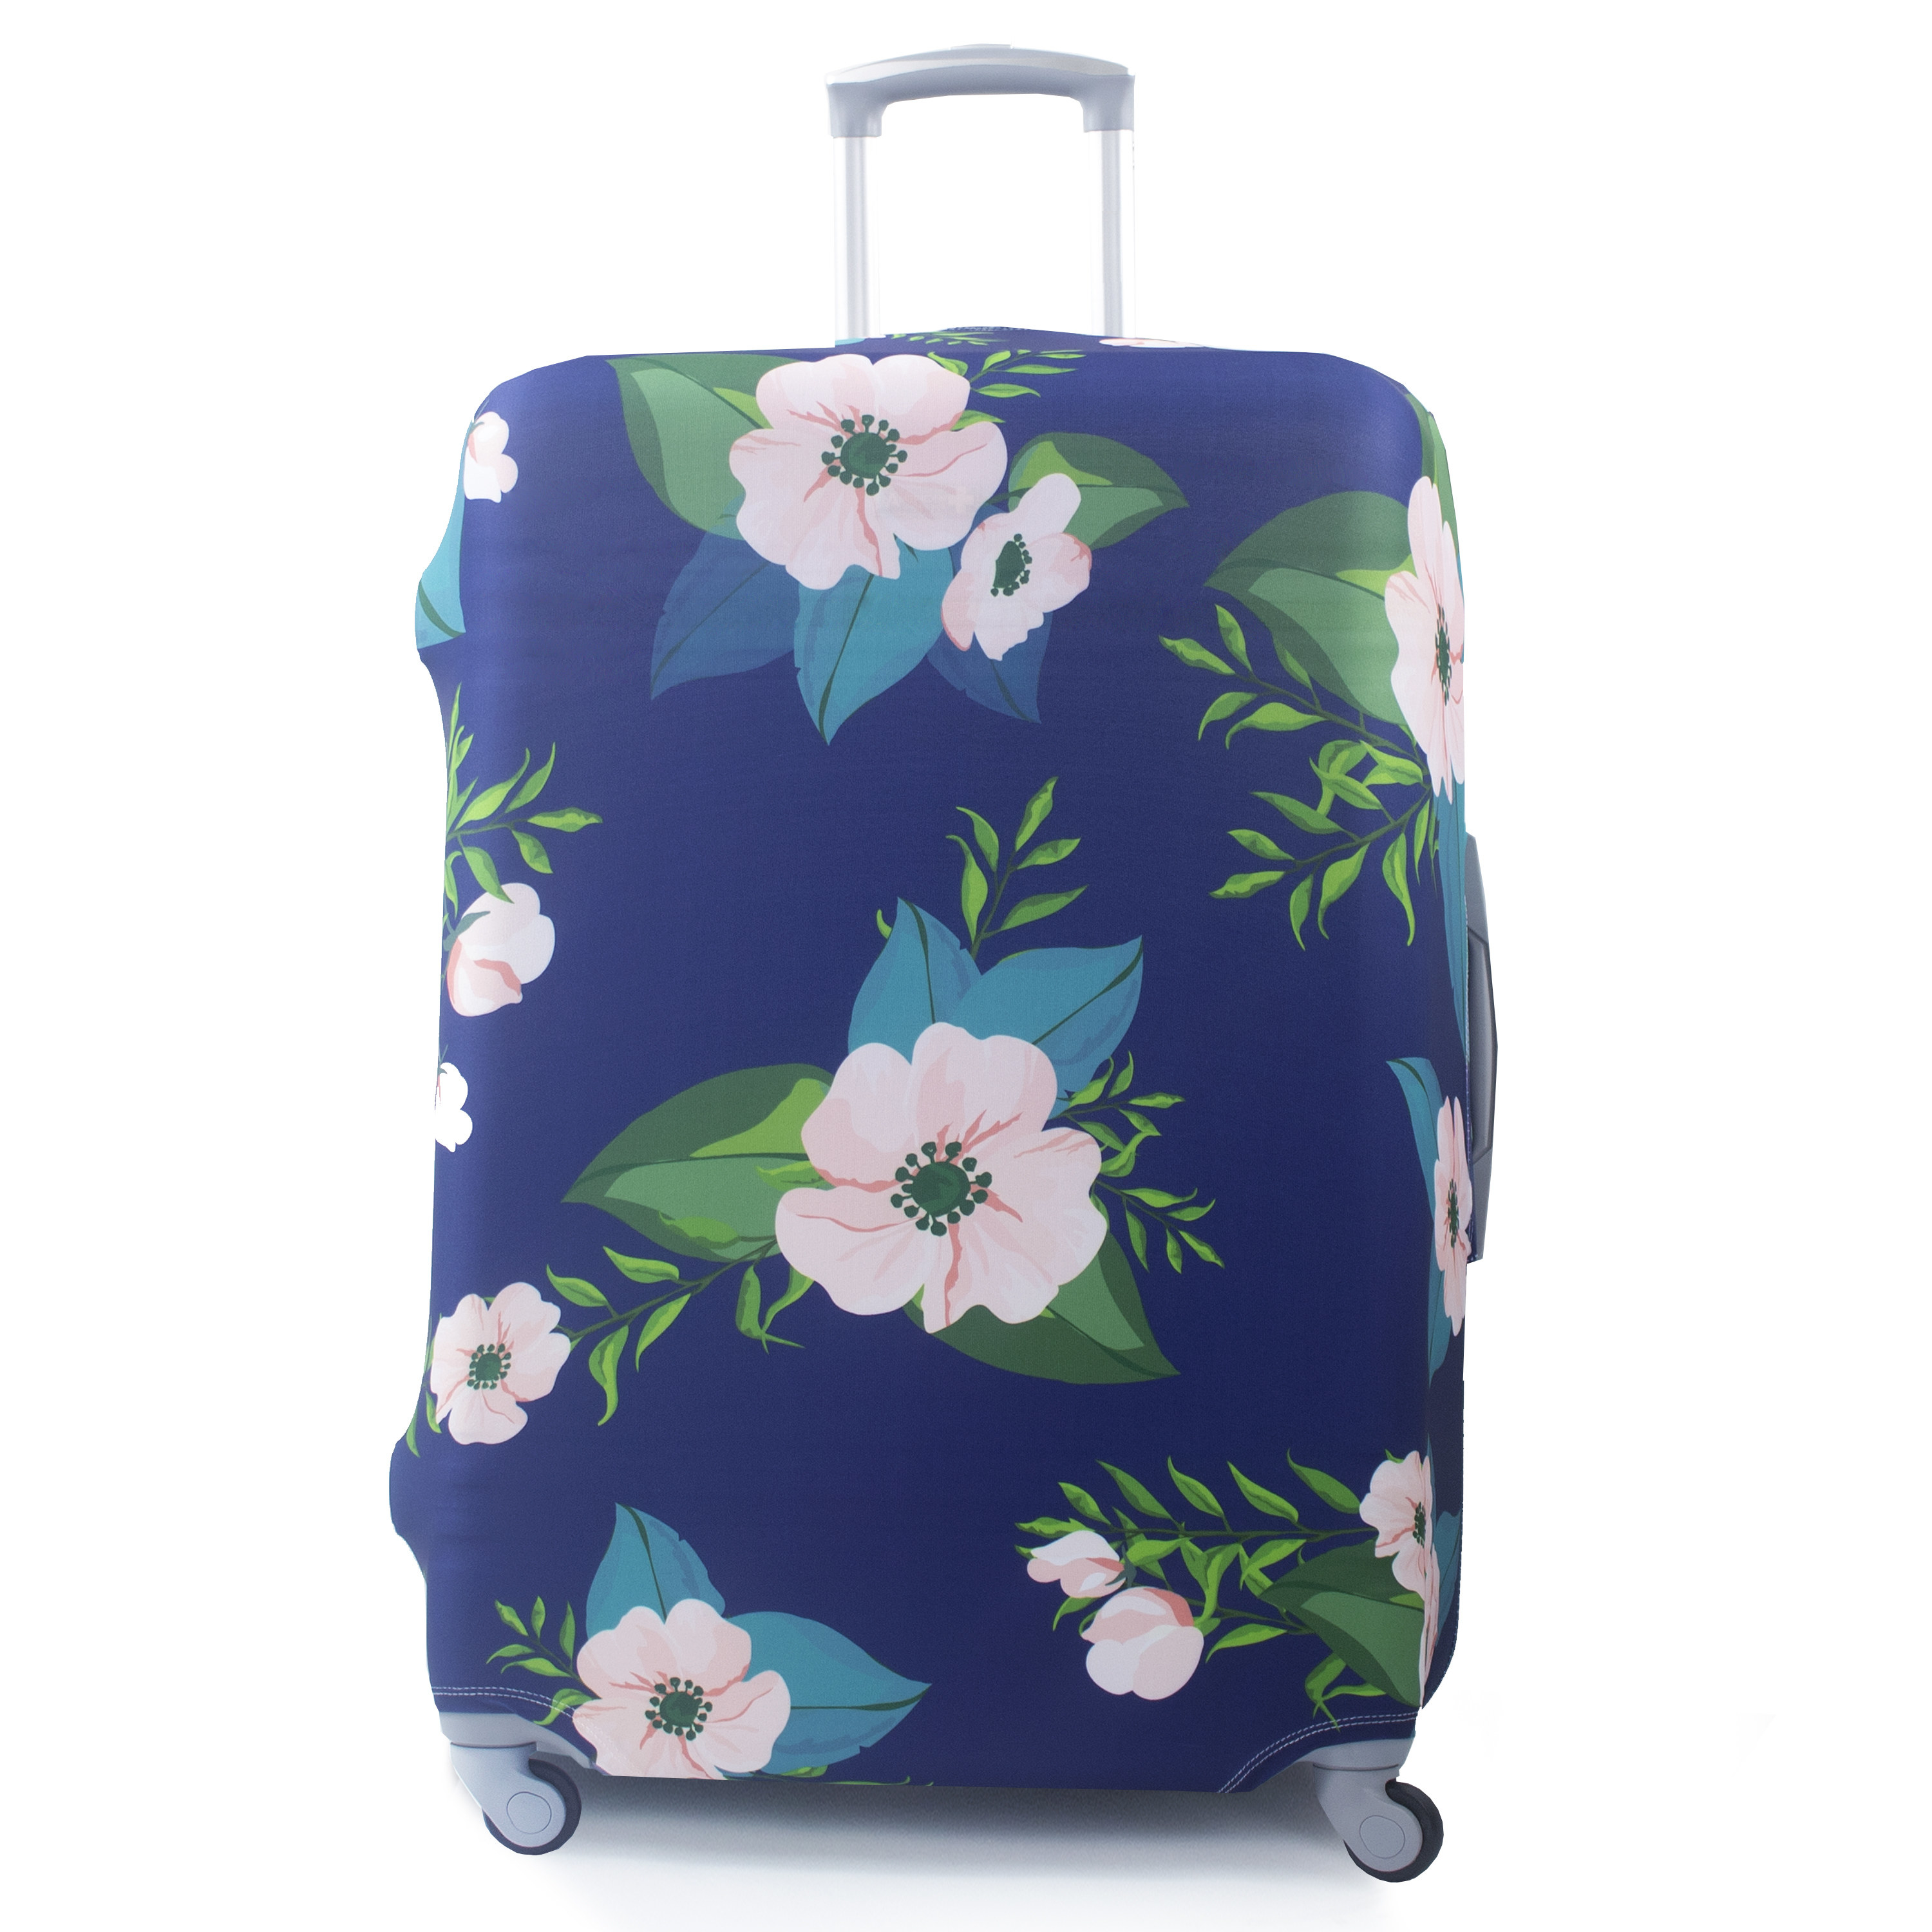 floral suitcase protector cover over a rolling luggage